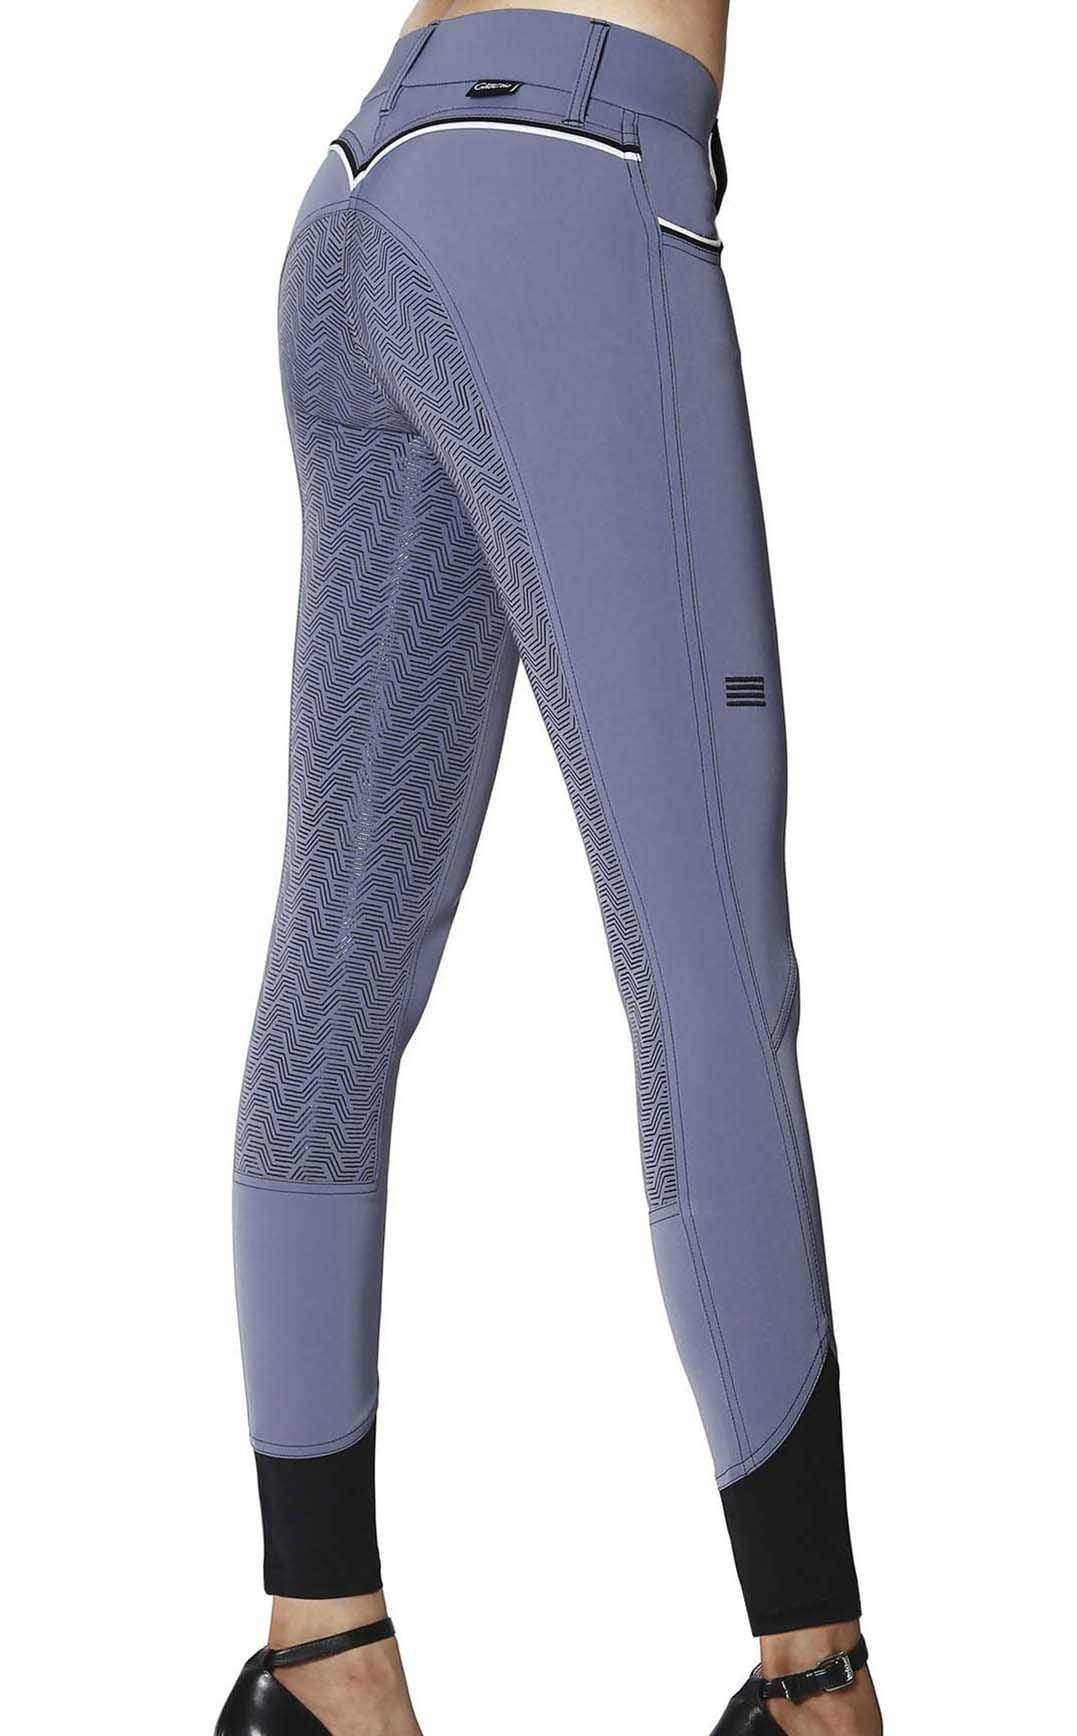 GhoDho Breeches sz 30 / Sky GhoDho Adena Full Seat Breeches equestrian team apparel online tack store mobile tack store custom farm apparel custom show stable clothing equestrian lifestyle horse show clothing riding clothes horses equestrian tack store